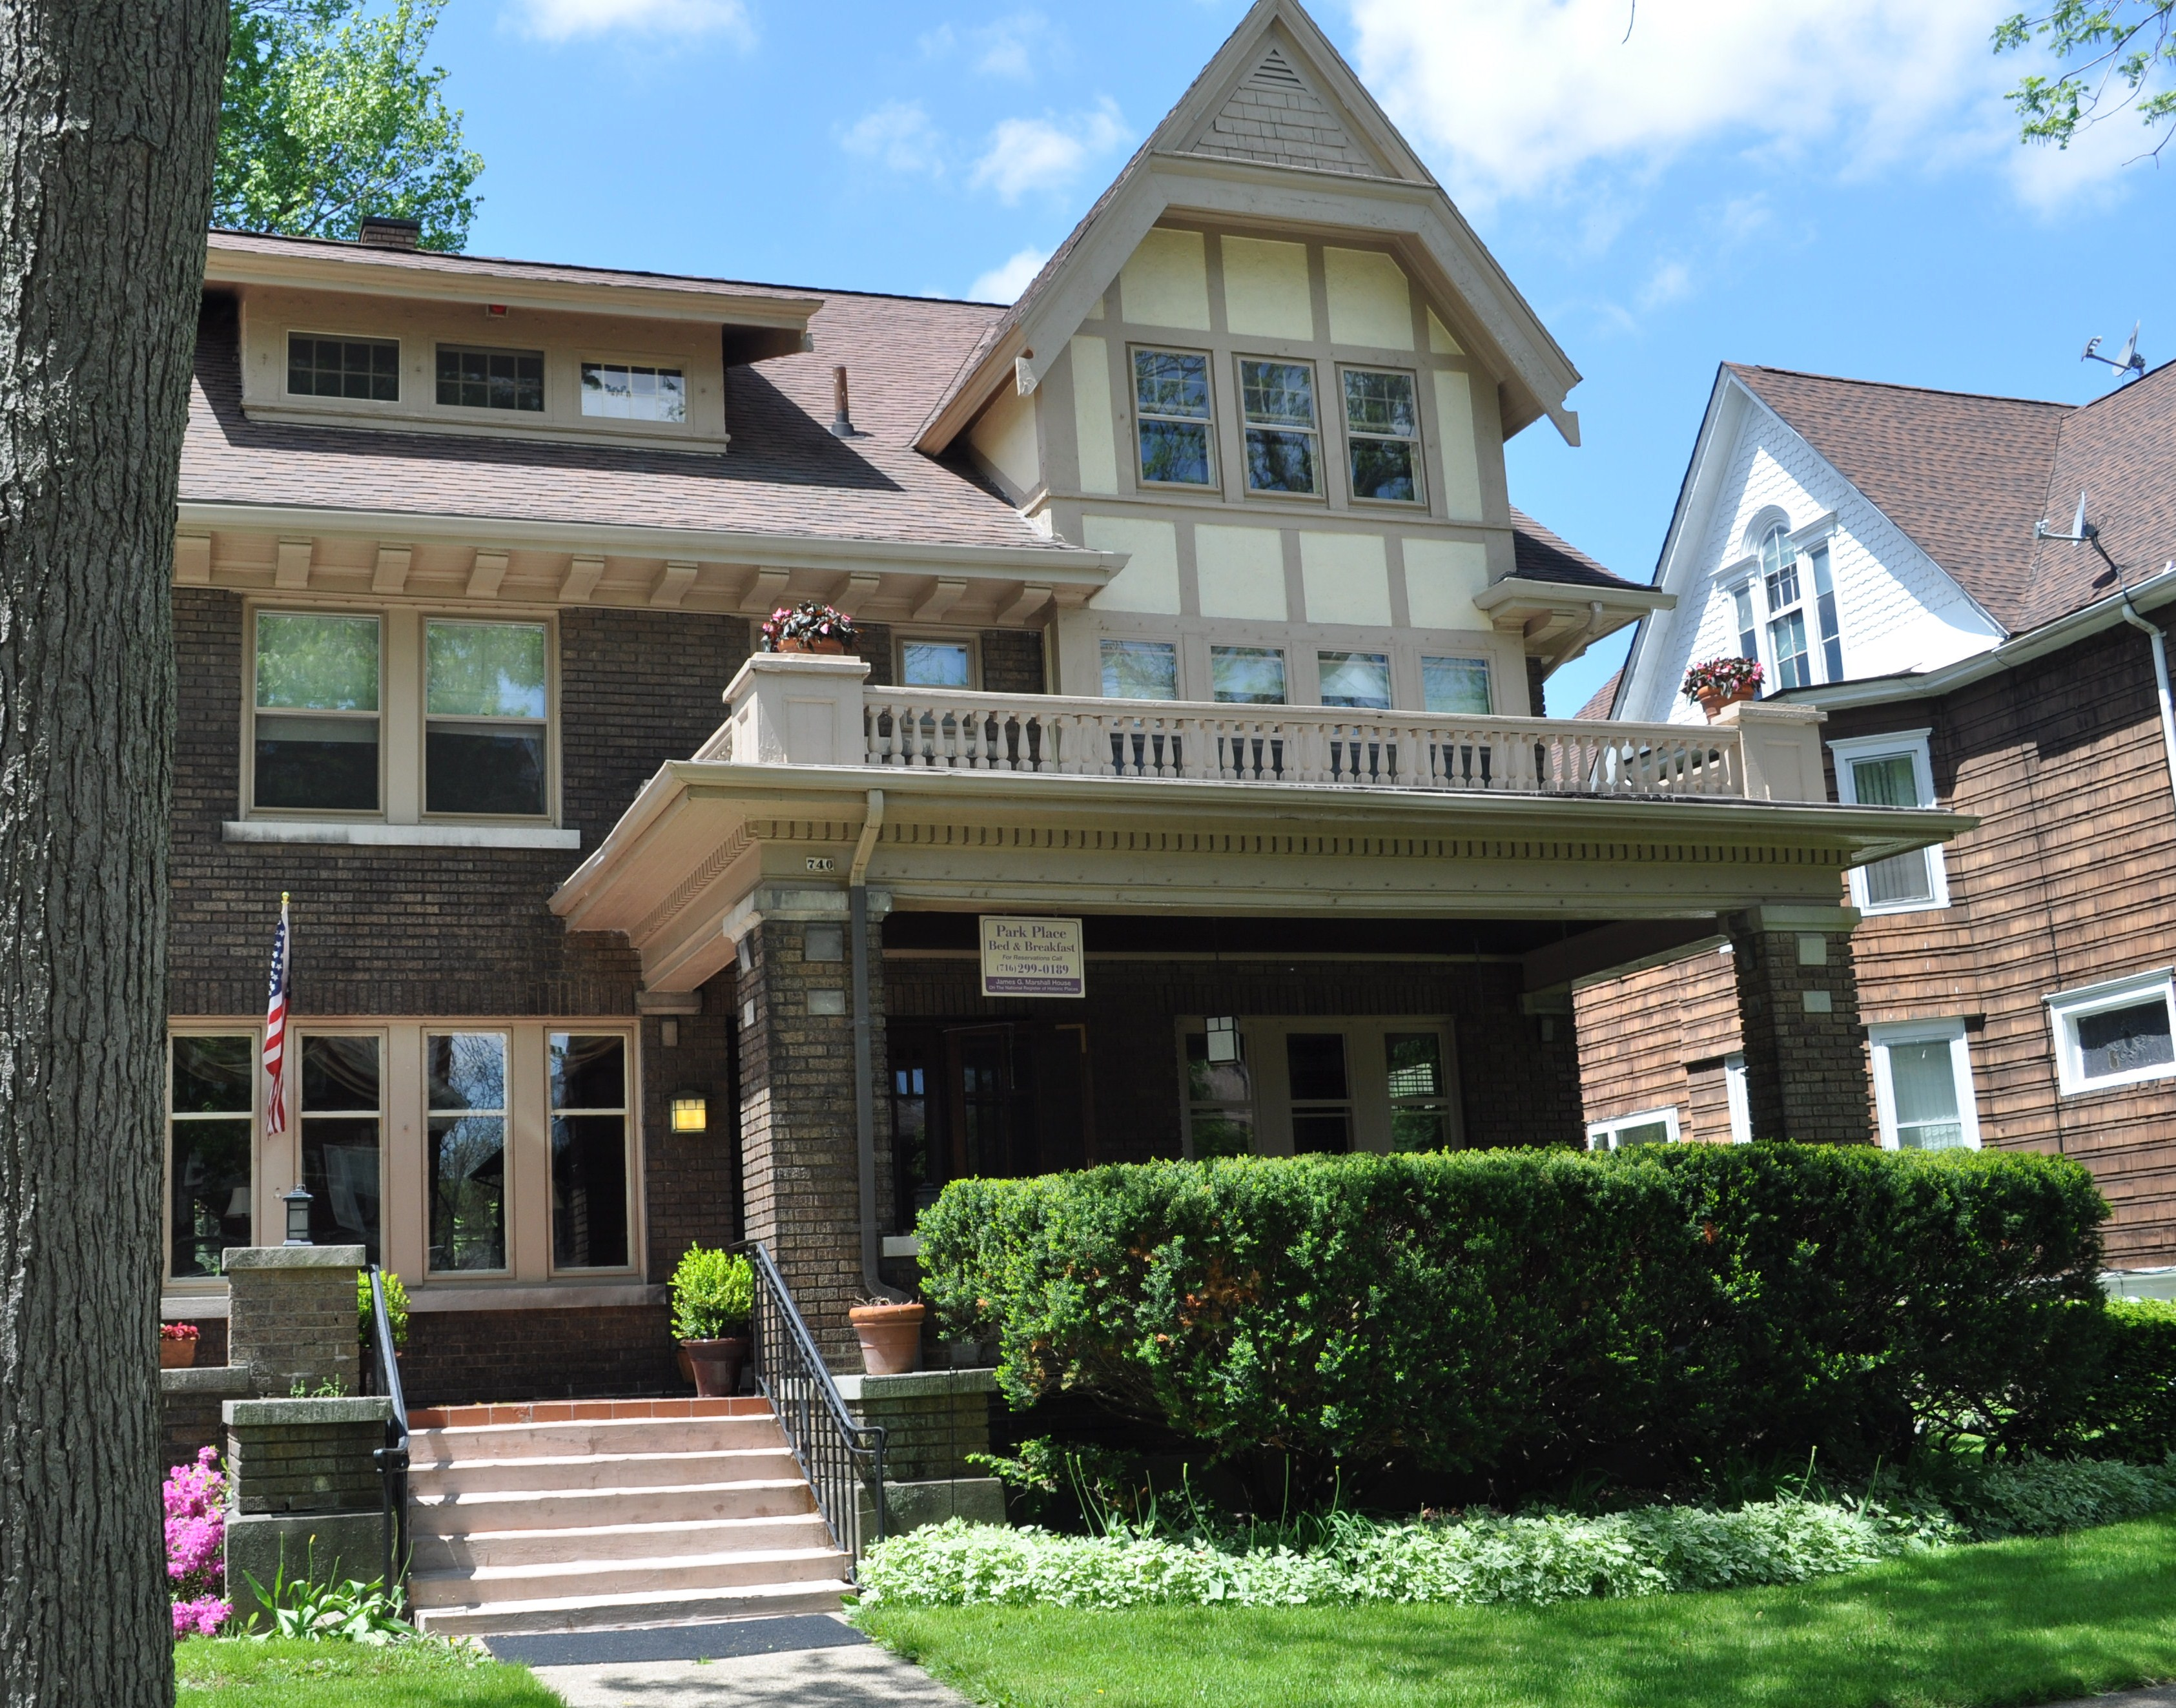 Park Place Bed and Breakfast